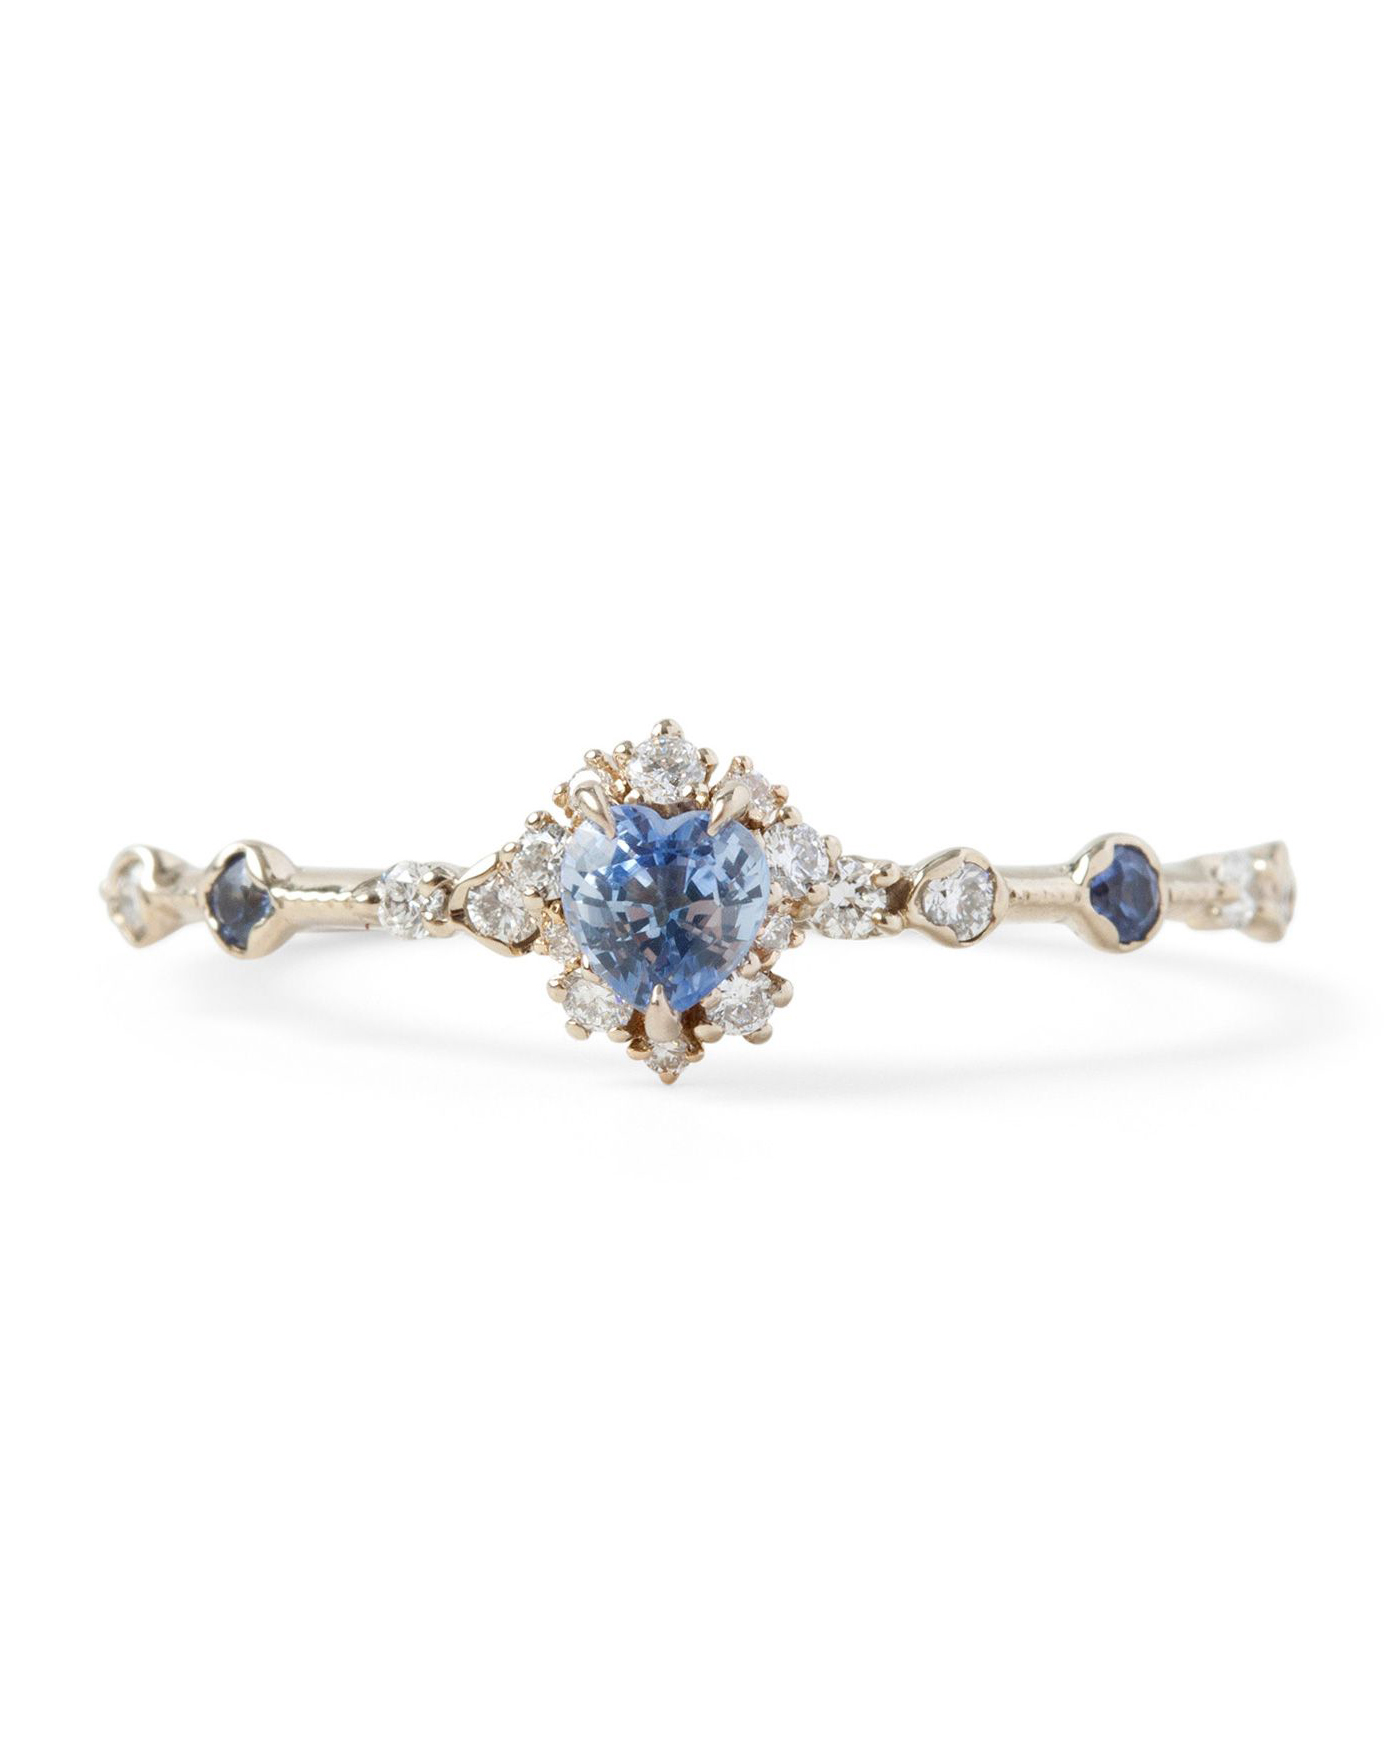 pale blue heart-shaped sapphire ring